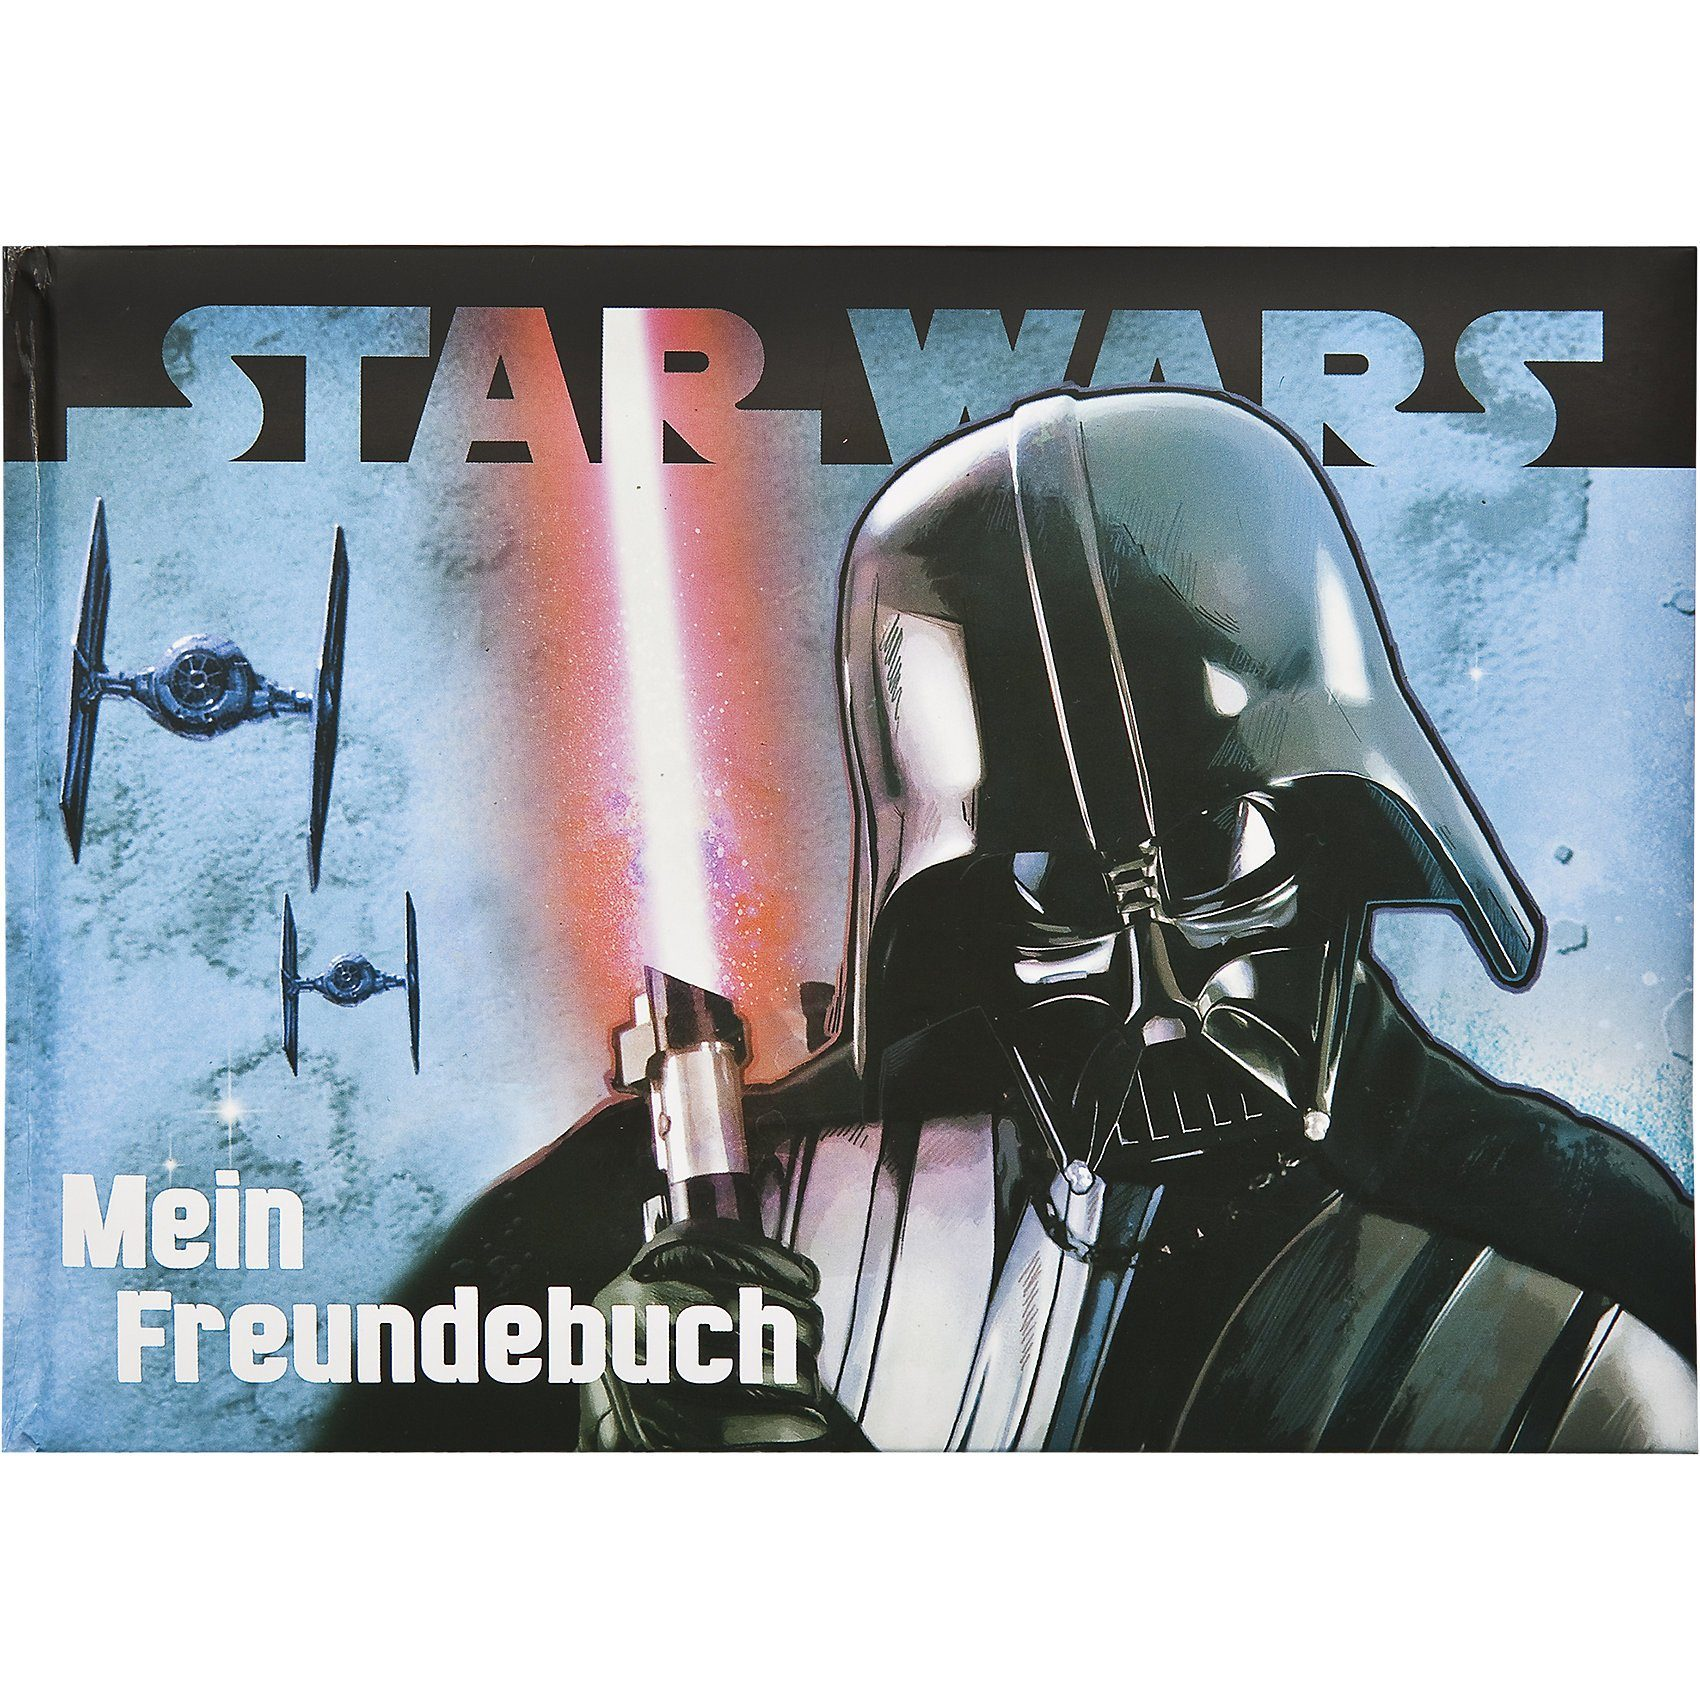 UNDERCOVER Freundebuch A5 Star Wars